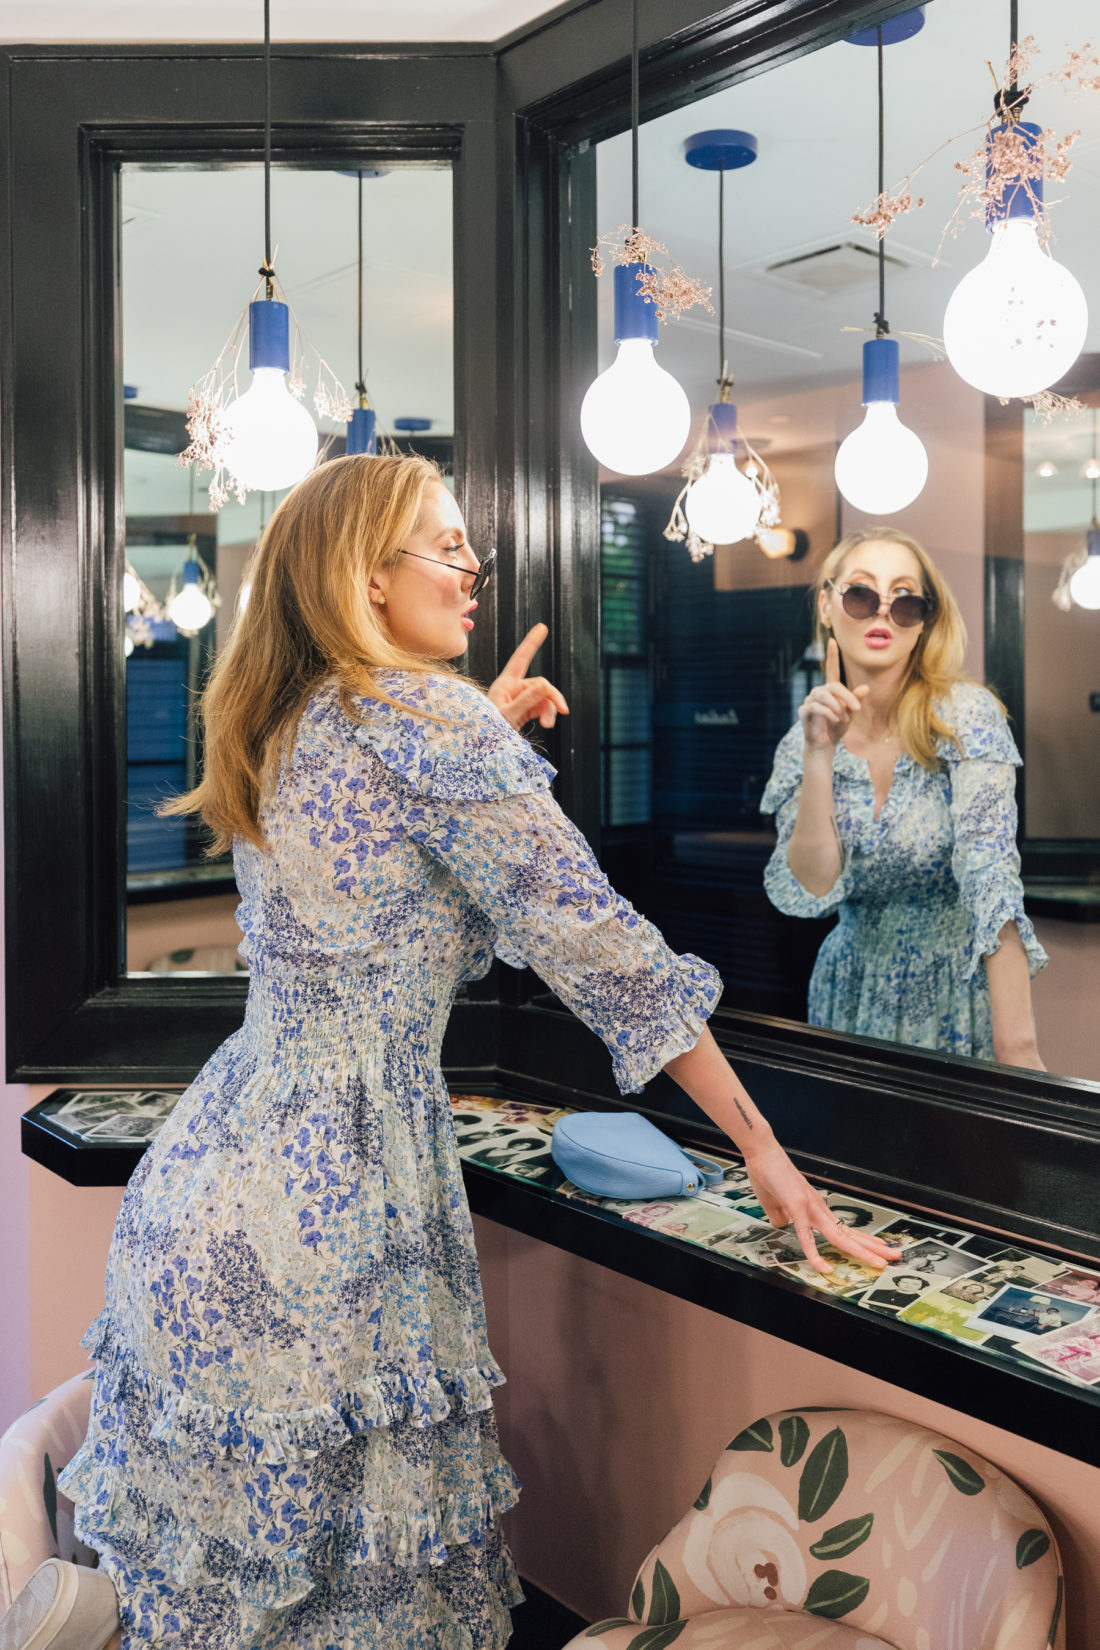 Eva Amurri Martino wears a flowery blue dress and looks in the mirror at the Claremont Hotel in Atlanta